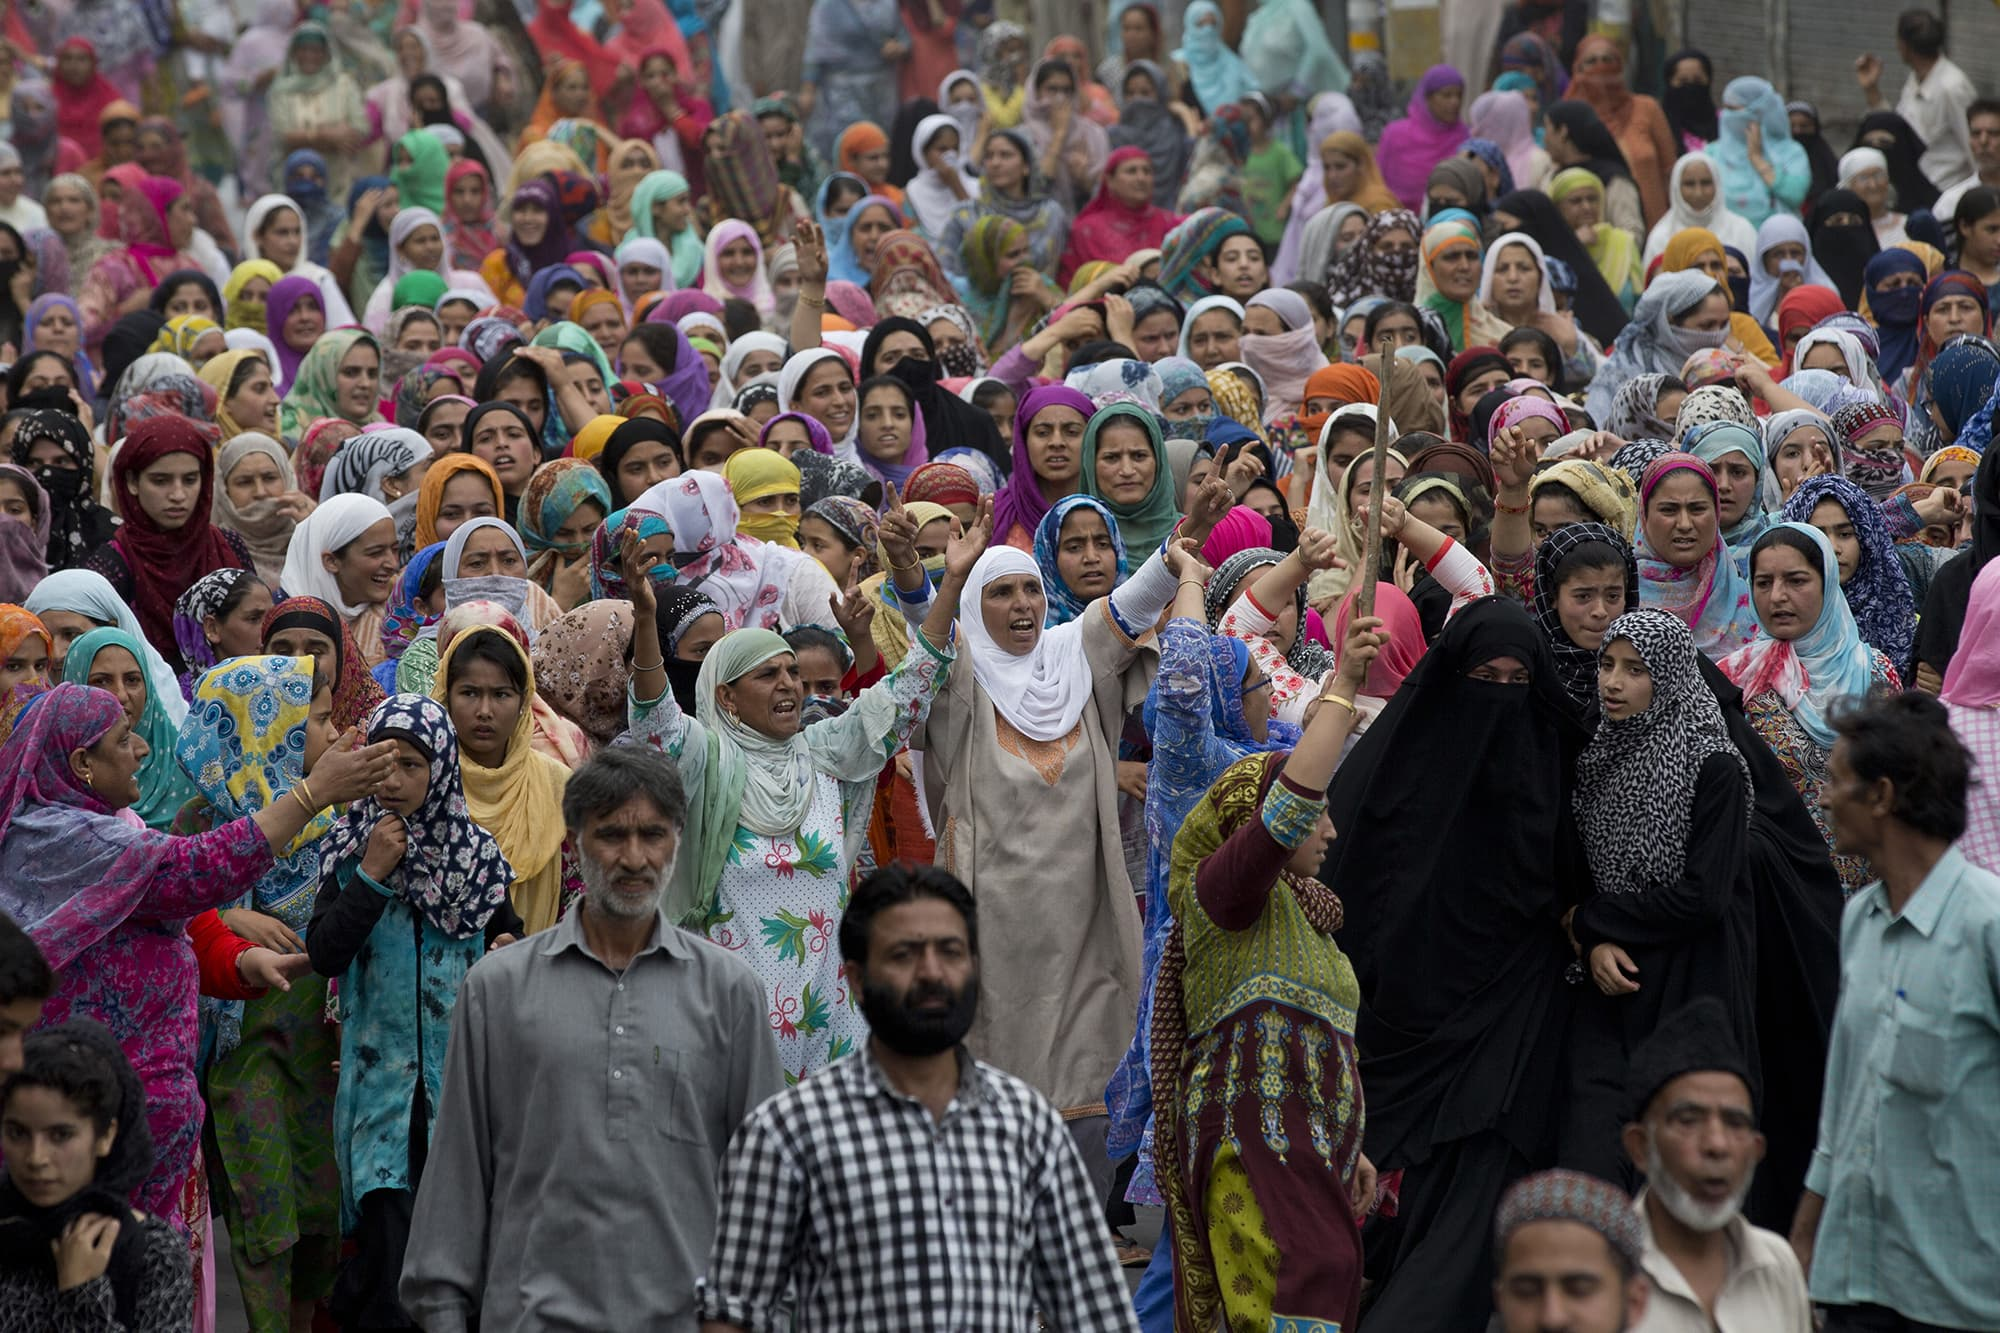 Kashmiri women shout slogans during a protest march held under curfew in Srinagar. ─ AP